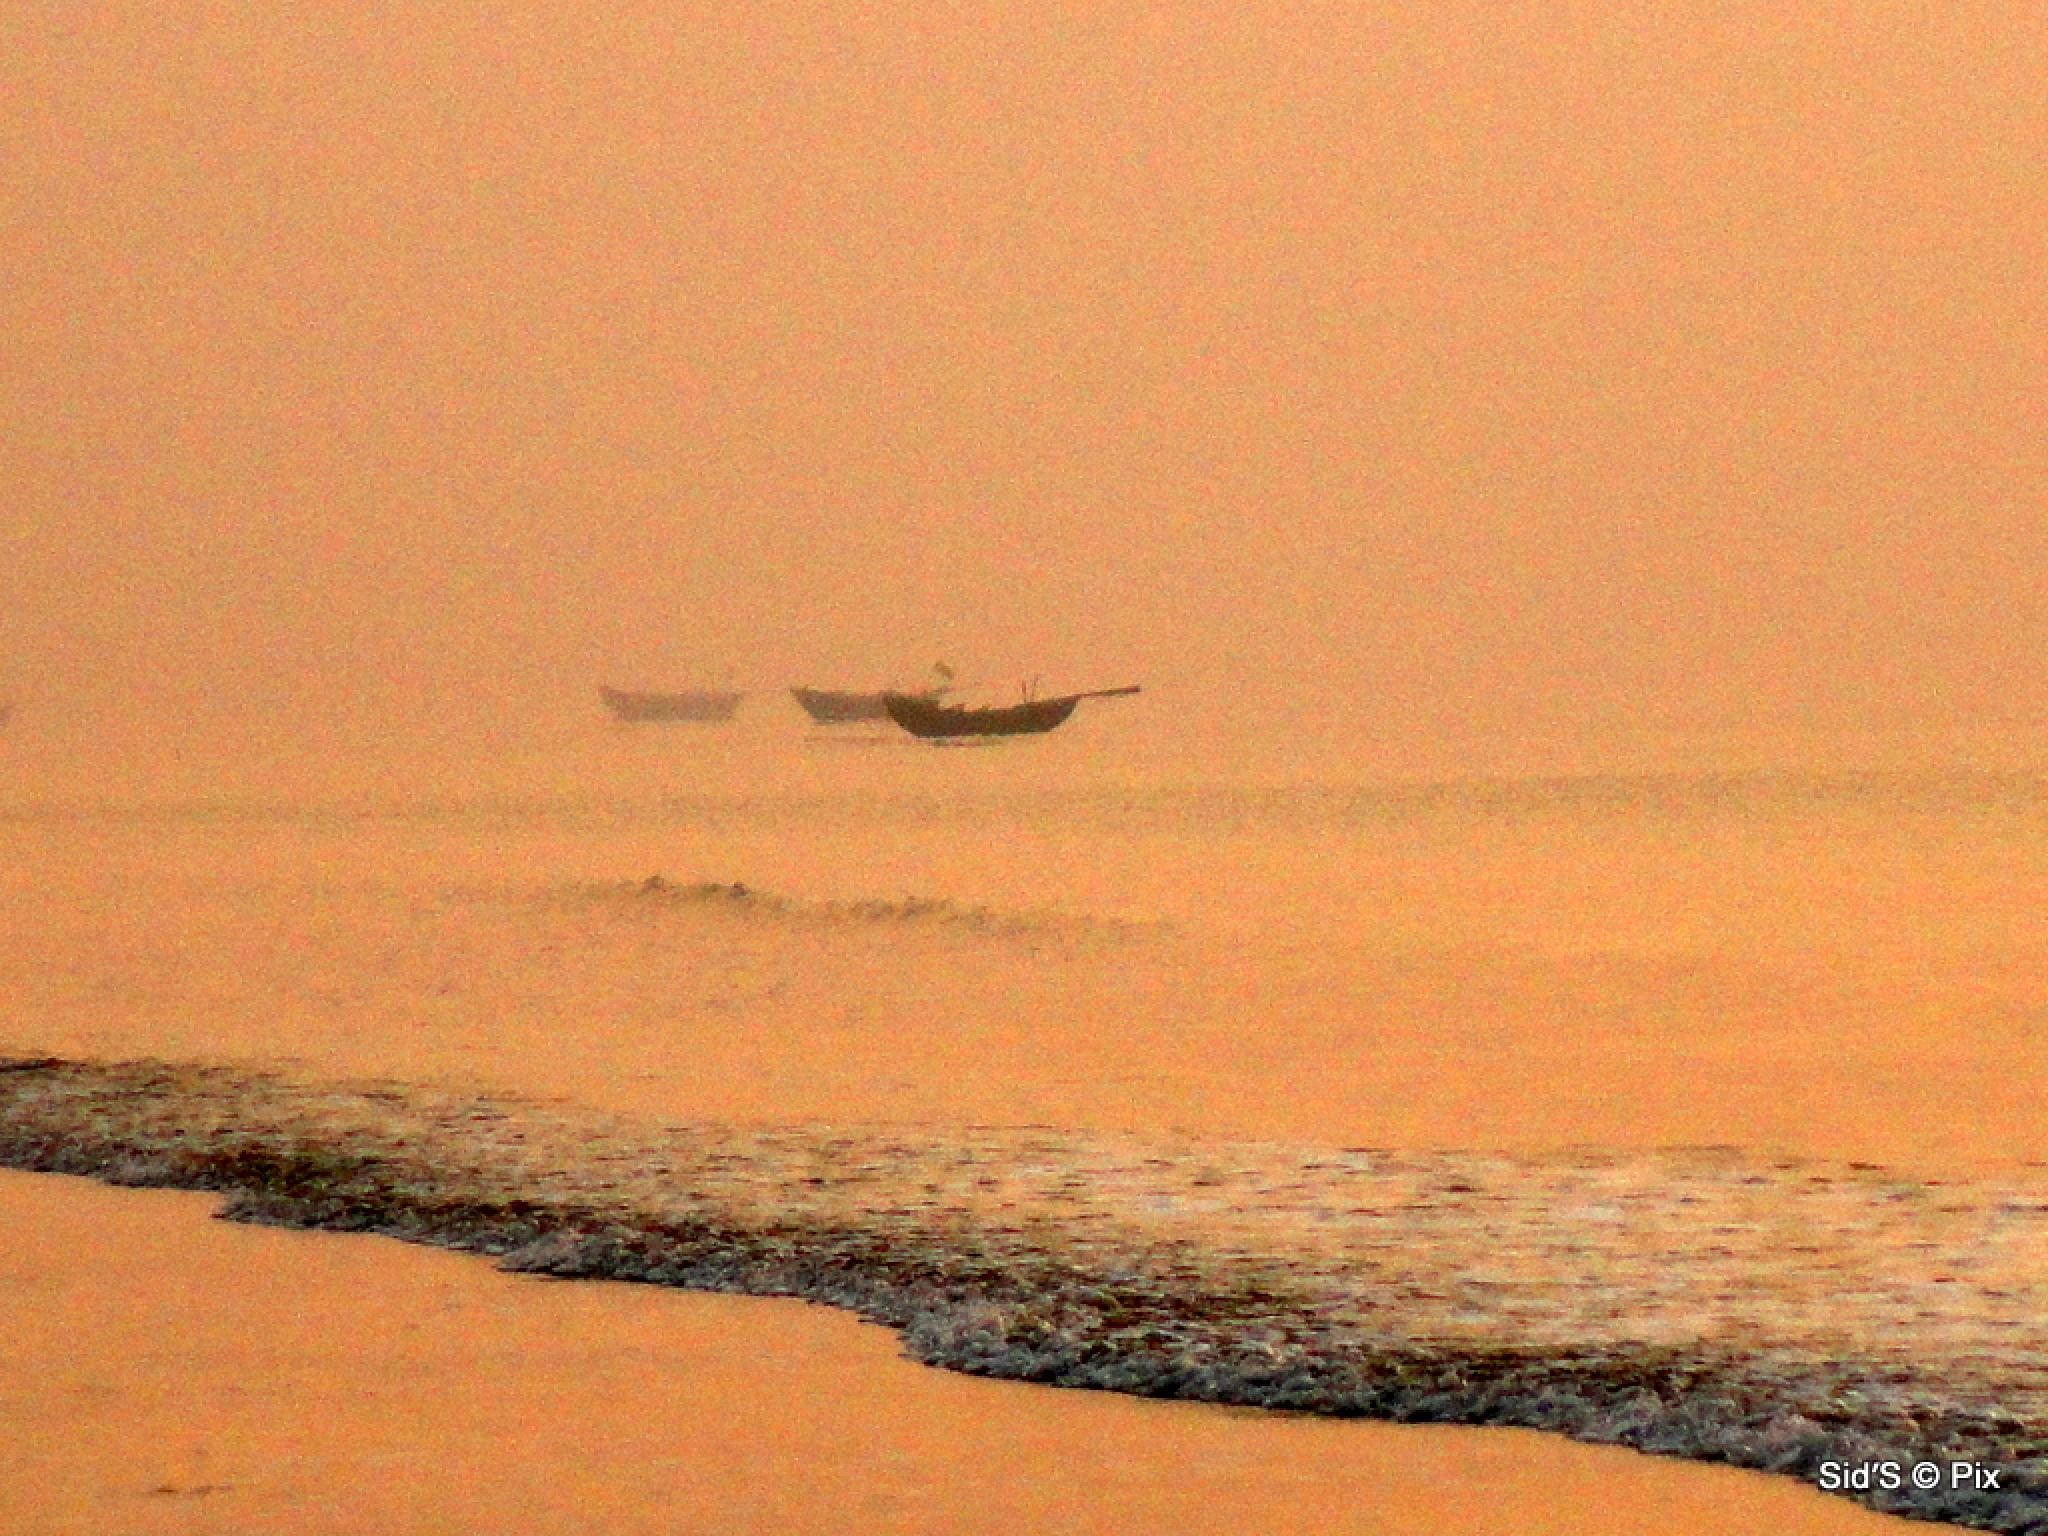 Boats in the Twilight Zone by Siddharth Sanyal